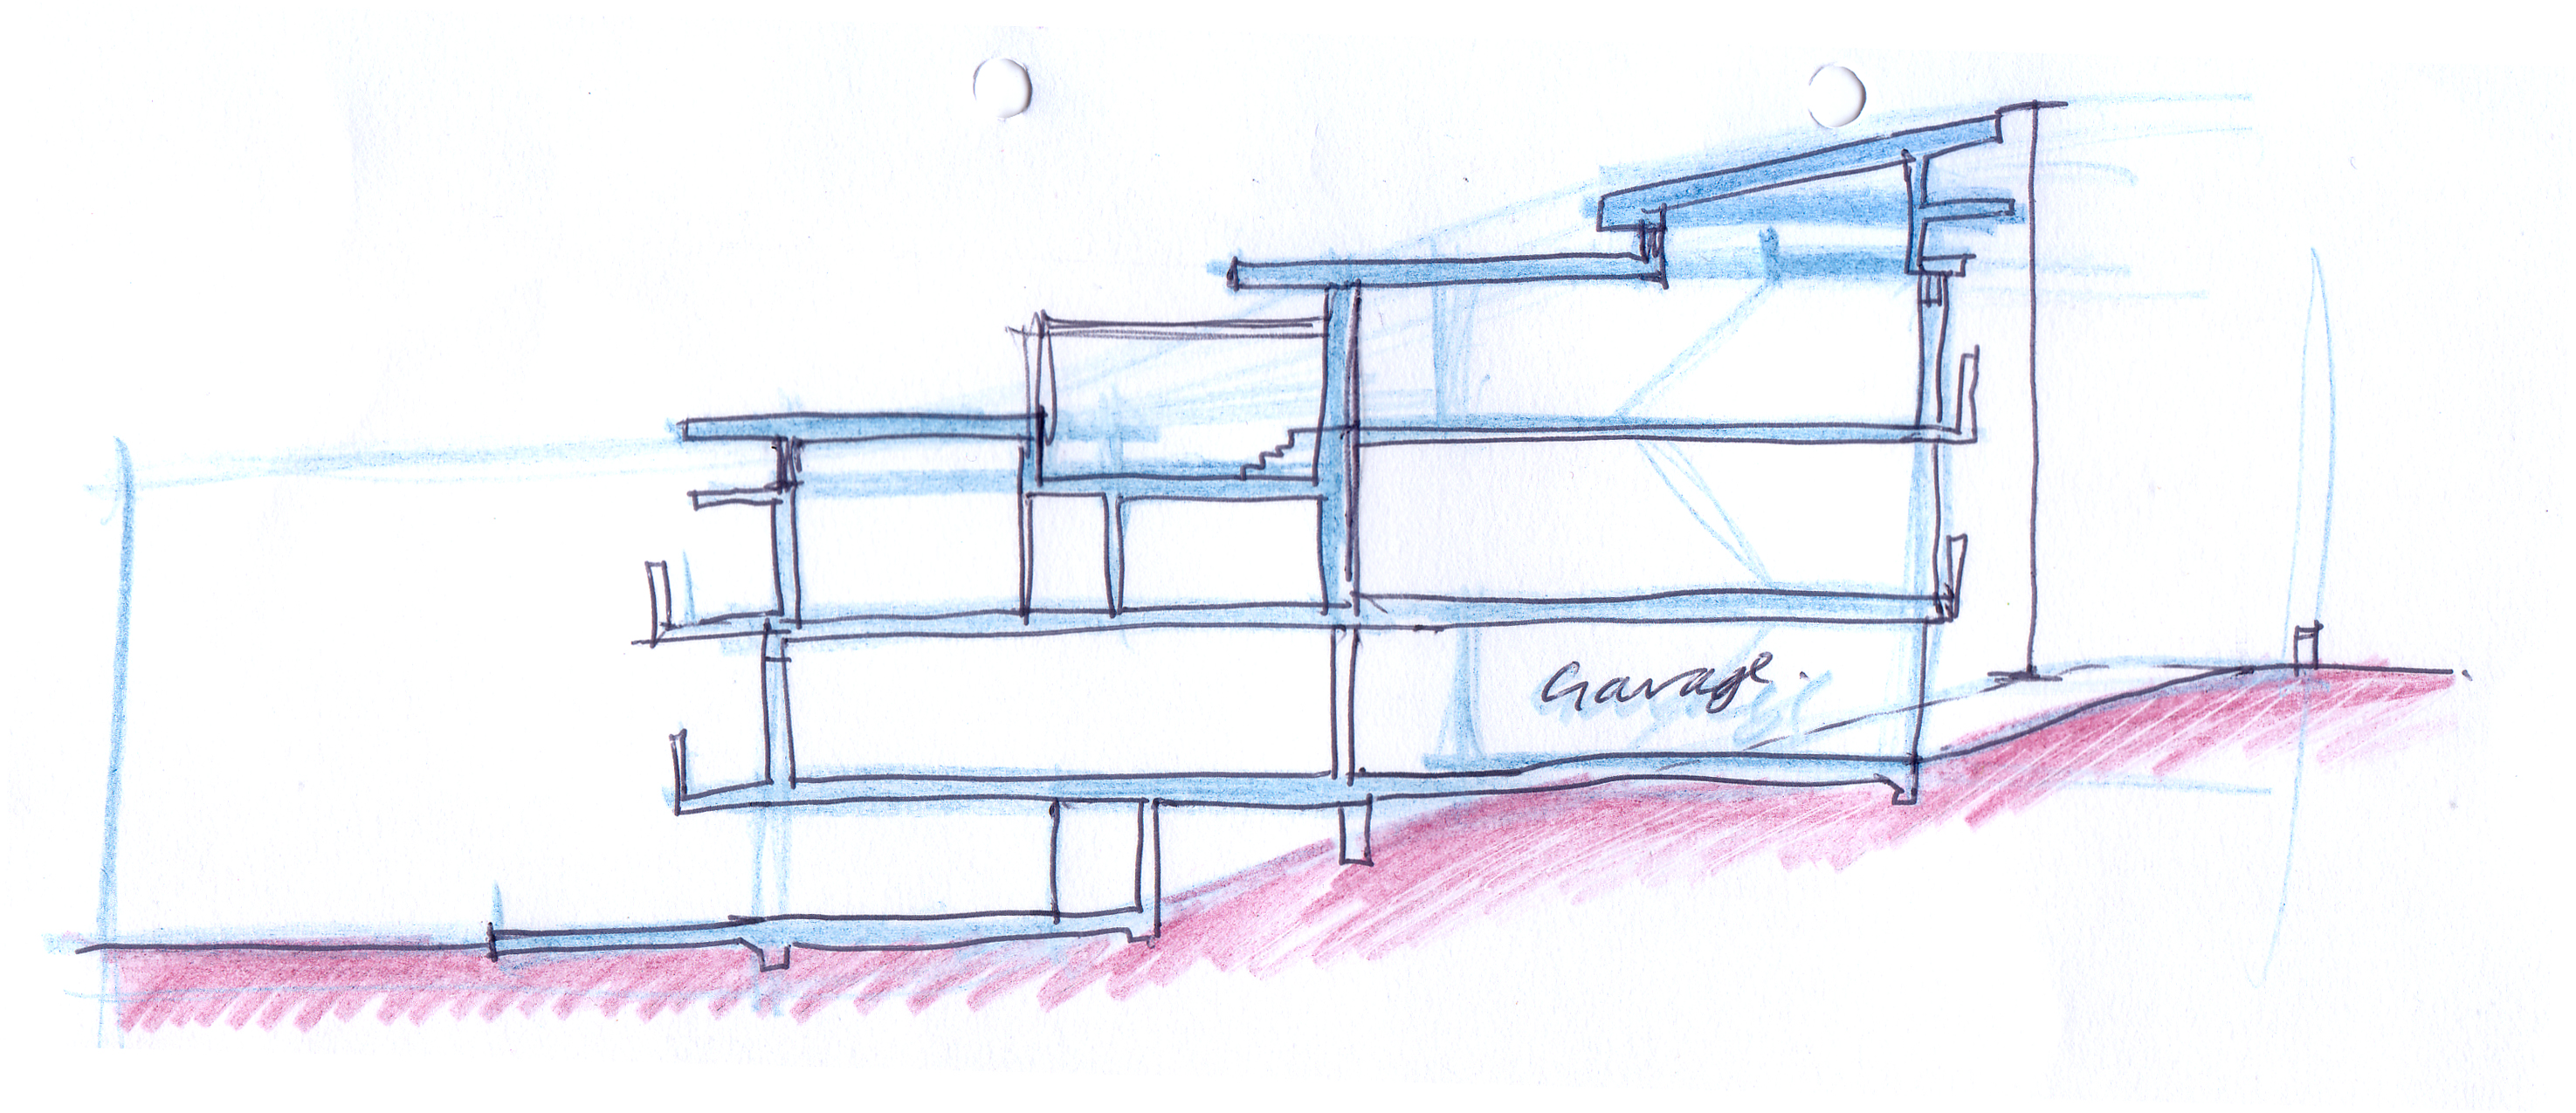 conceptial section